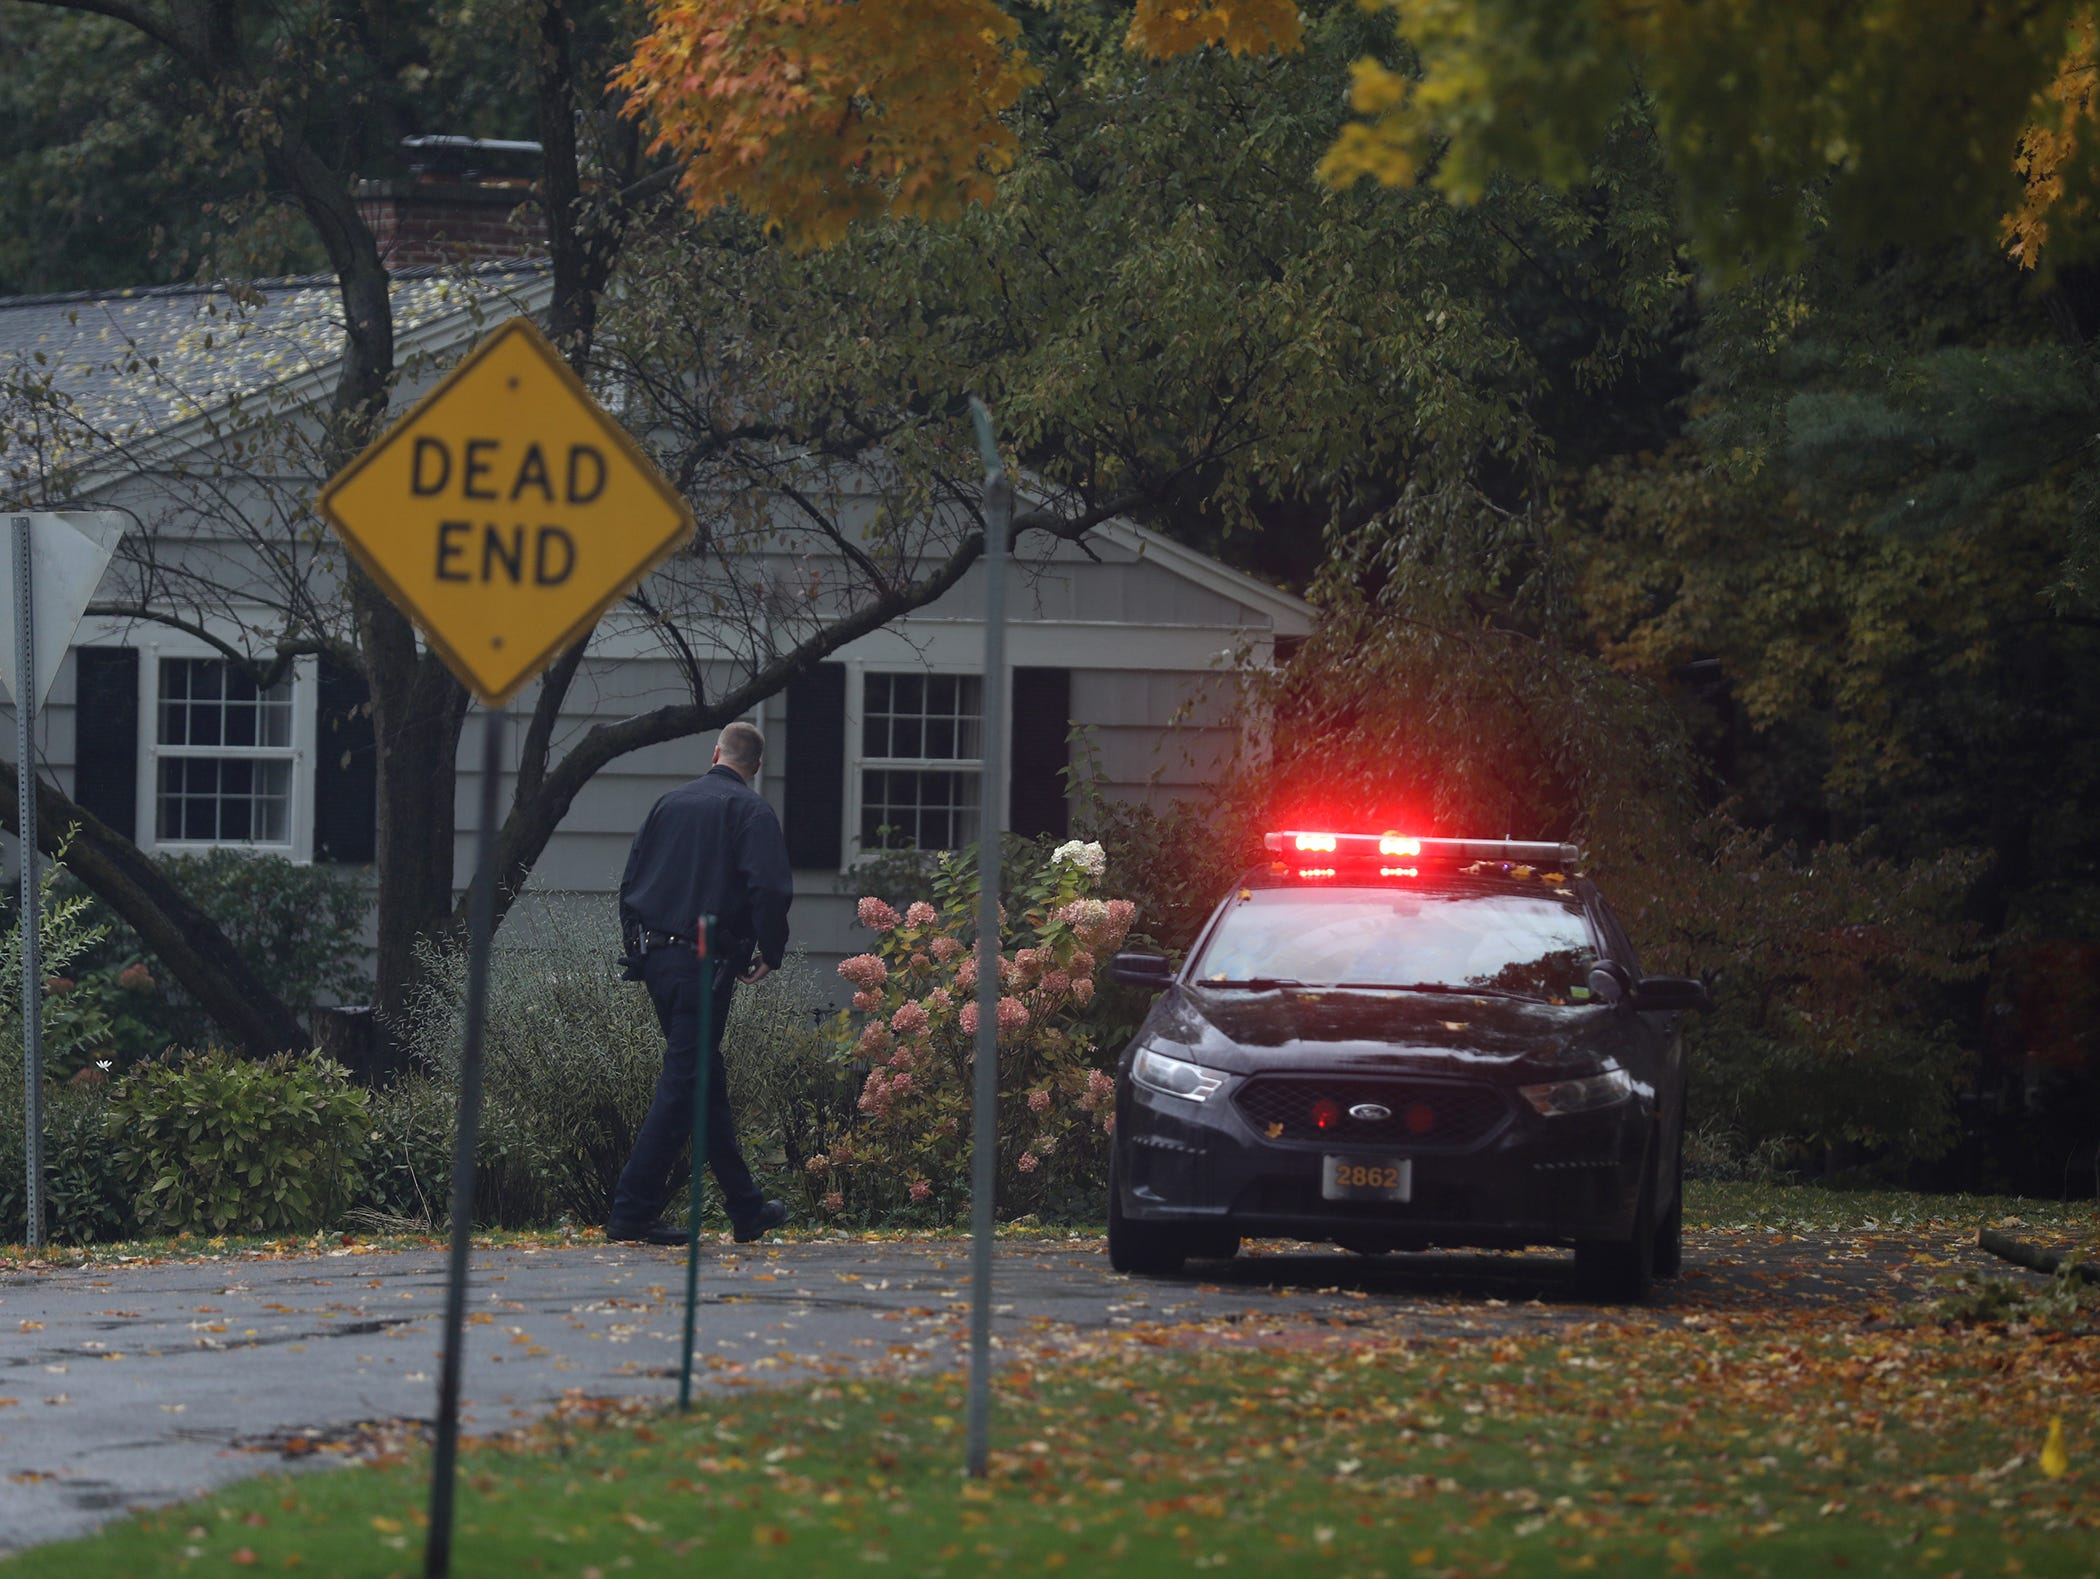 A woman was killed in her home on Collingsworth Drive in Penfield, Oct. 31, 2018.  Deputies block off the entry onto the street while they investigate.